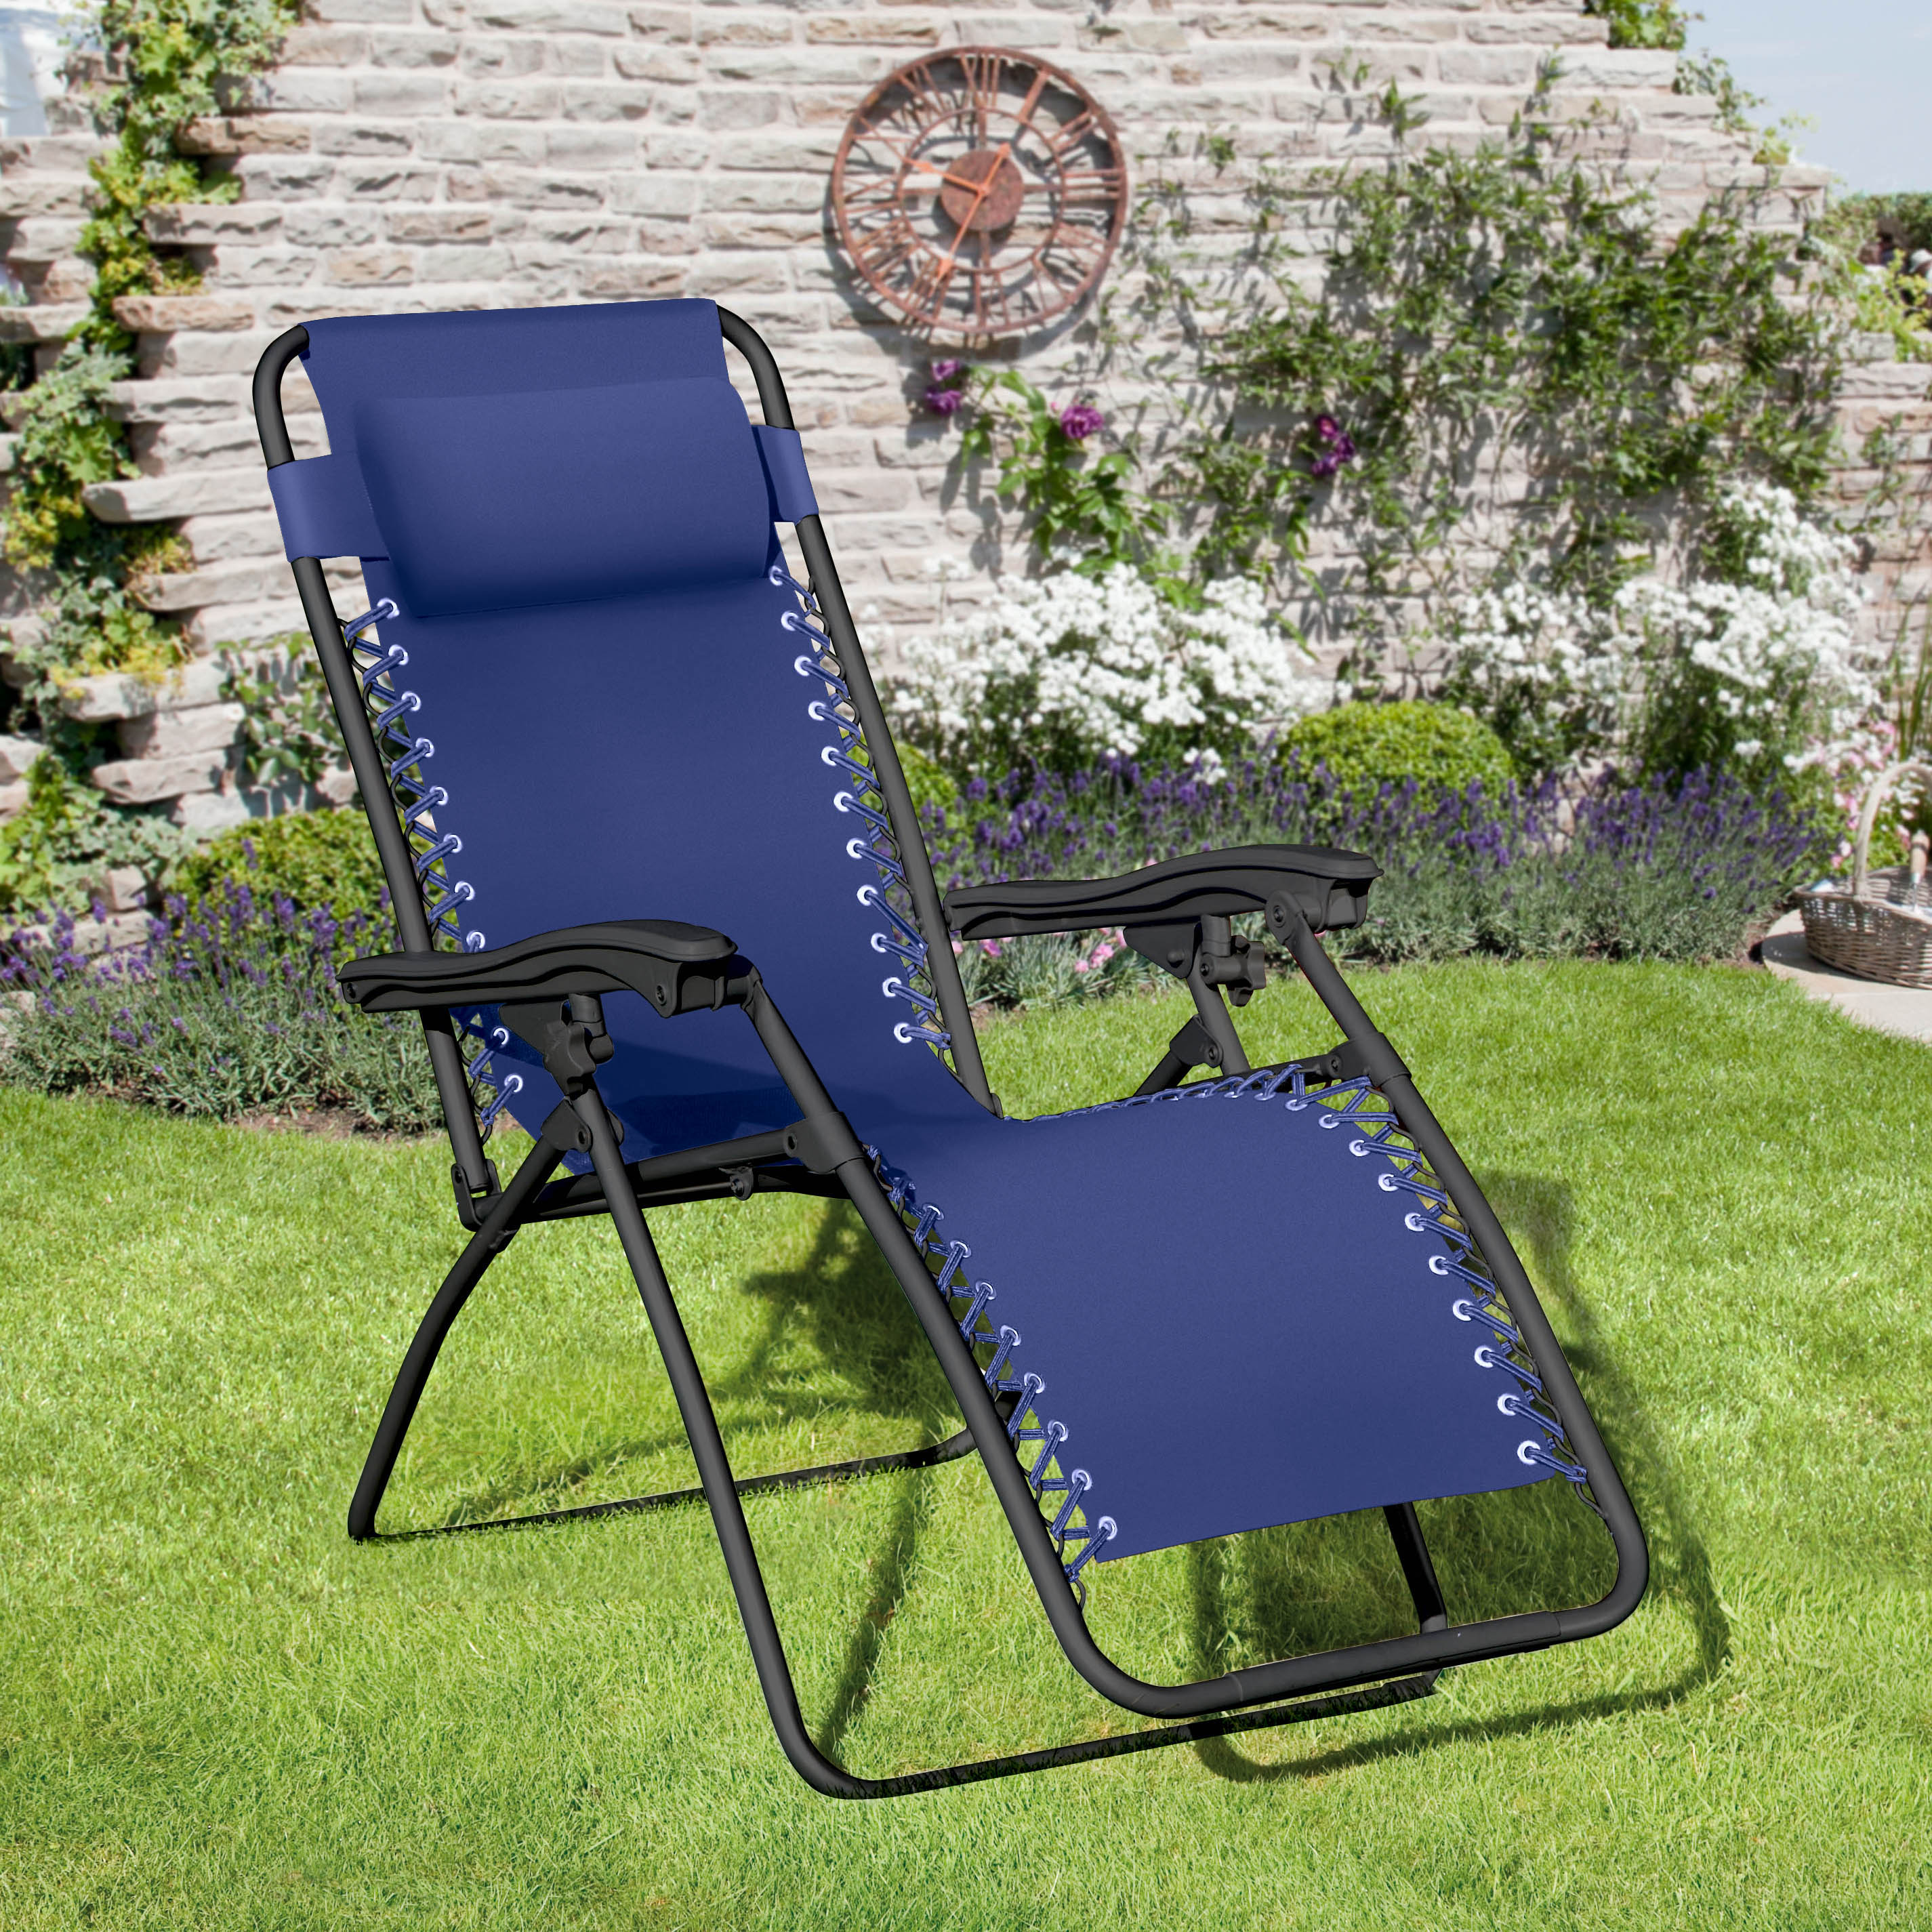 Suntime Deluxe Navy Blue Royale Gravity Garden Chair